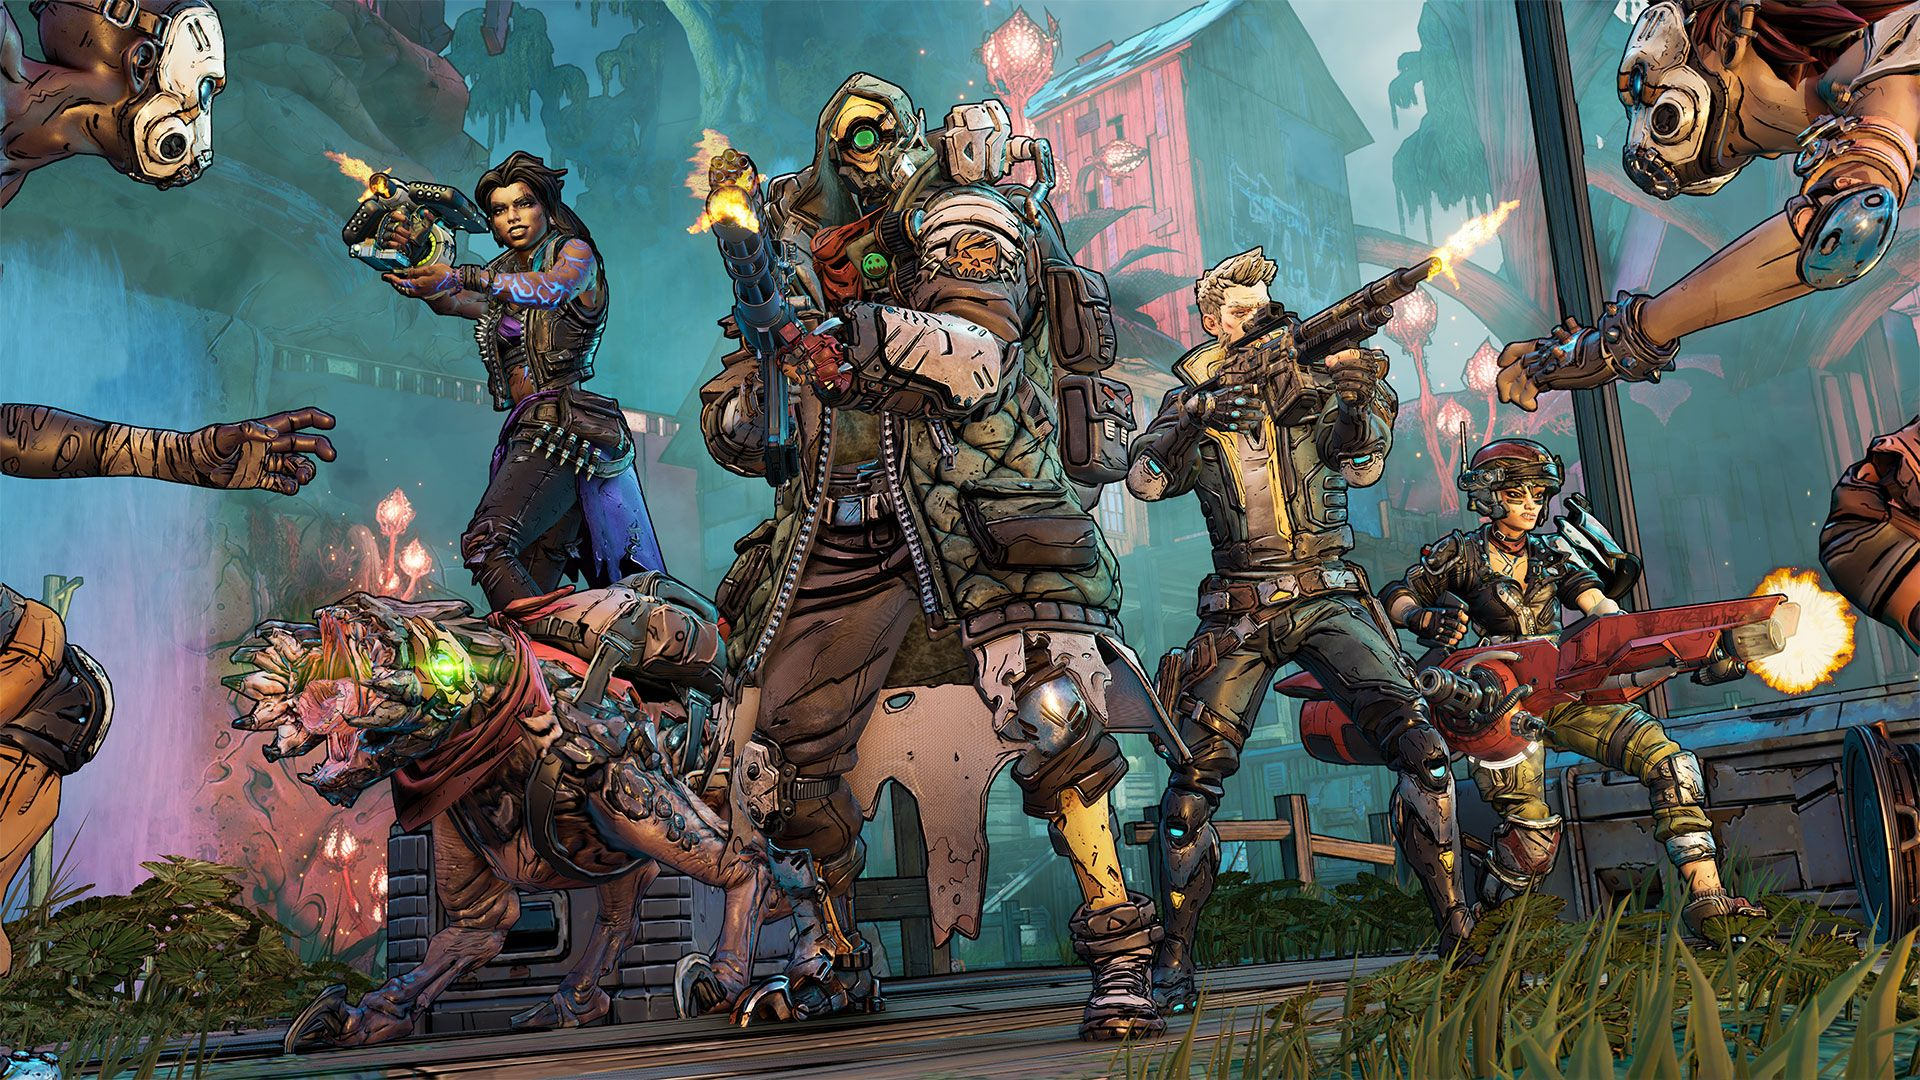 bl3 characters